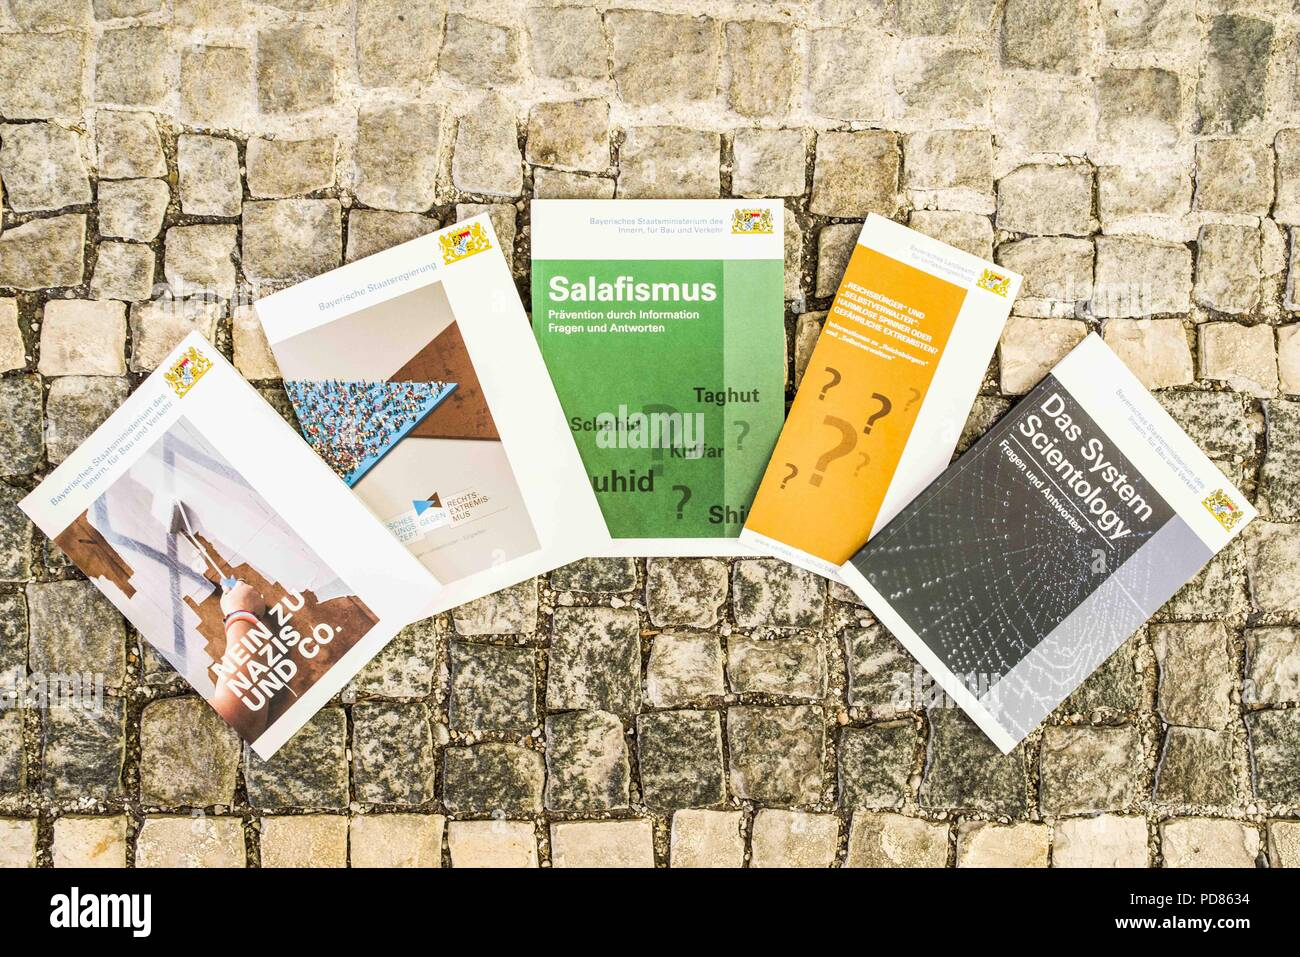 Munich, Bavaria, Germany. 7th Aug, 2018. Pamphlets with some of the challenges the Verfassungsschutz faces in maintaining law and order in Bavaria and Germany. JOACHIM HERRMANN, the Interior Minister of Bavaria, presented the half-year report of the Verfassungschutz (Geheimdienst, Secret Service). Herrmann stated that the challenges for the Verfassungsschutz are becoming more complex and multi-faceted, including right and left extremism, as well as islamists, islamophobes, foreigner criminality, Reichsbuerger (sovereign citizens), and Scientology. The Verfassungsschutz is a secret service - Stock Image